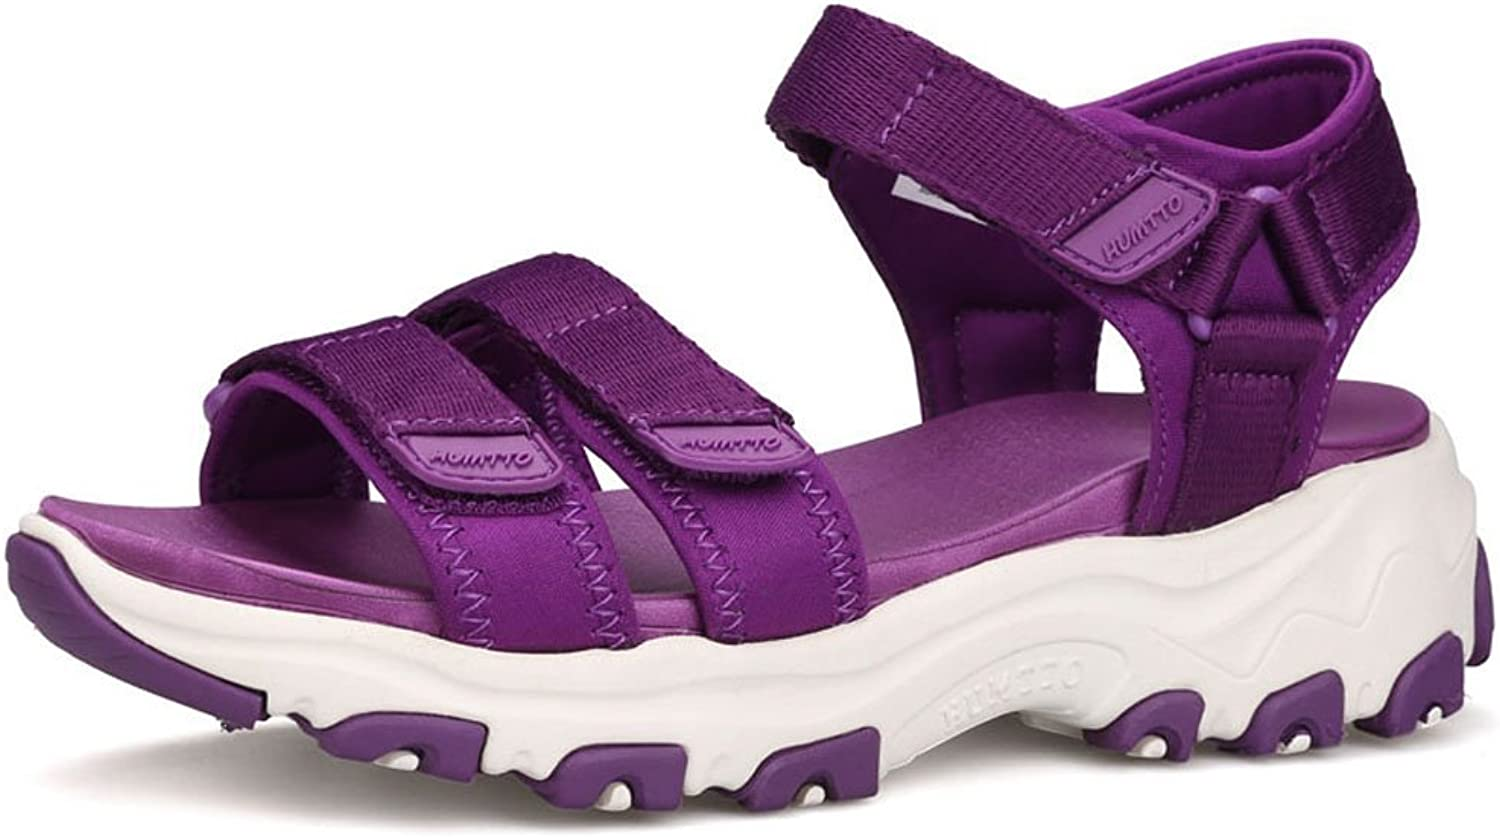 Sunjcs Women's Outdoor Athletic Sandals Three Strap Sport Beach Hiking Walking River Sandal